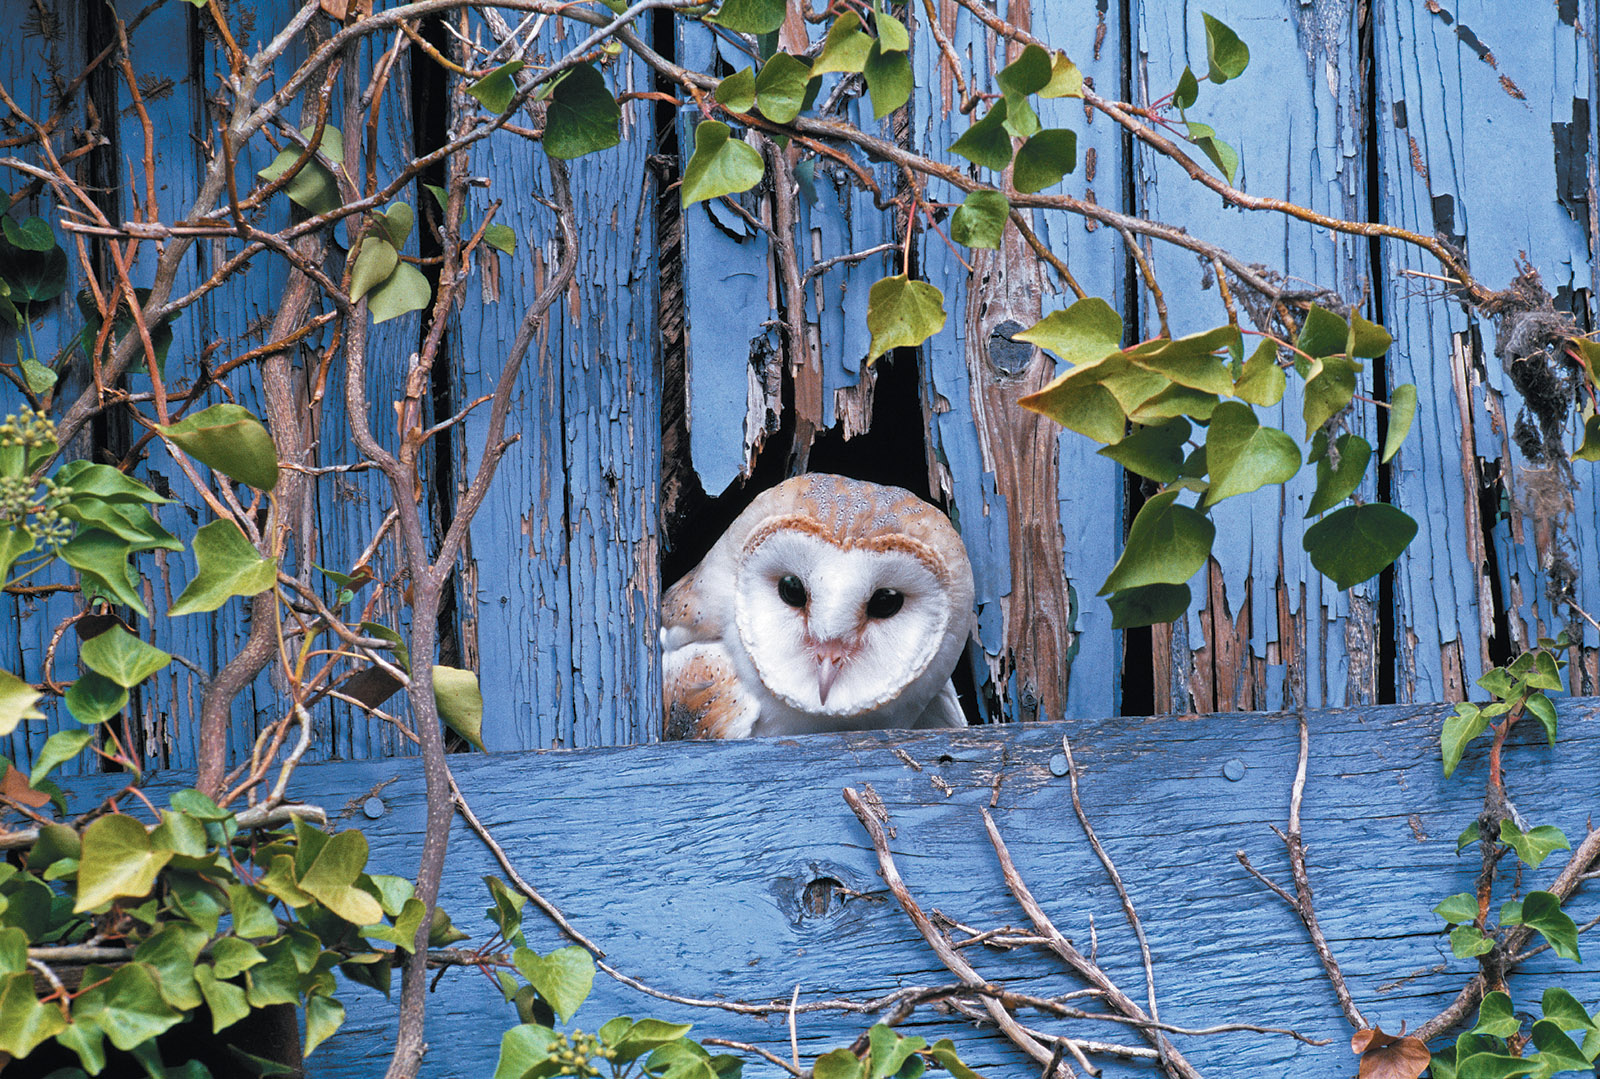 a parliament of owls by robert o paxton the new york review